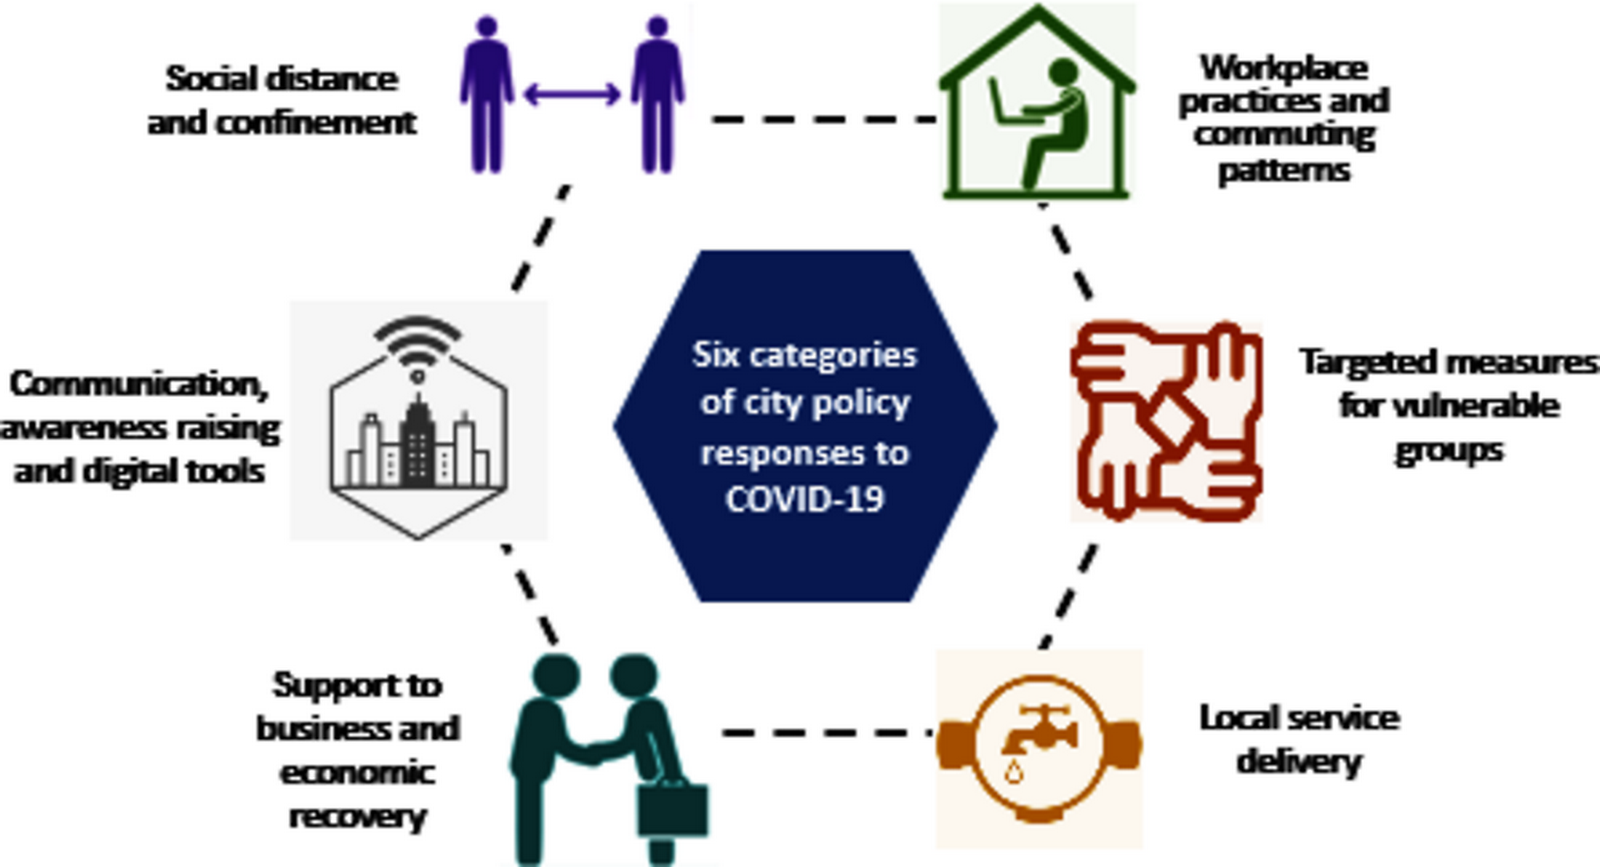 Urban policies that can help fight pandemics - Sheet2